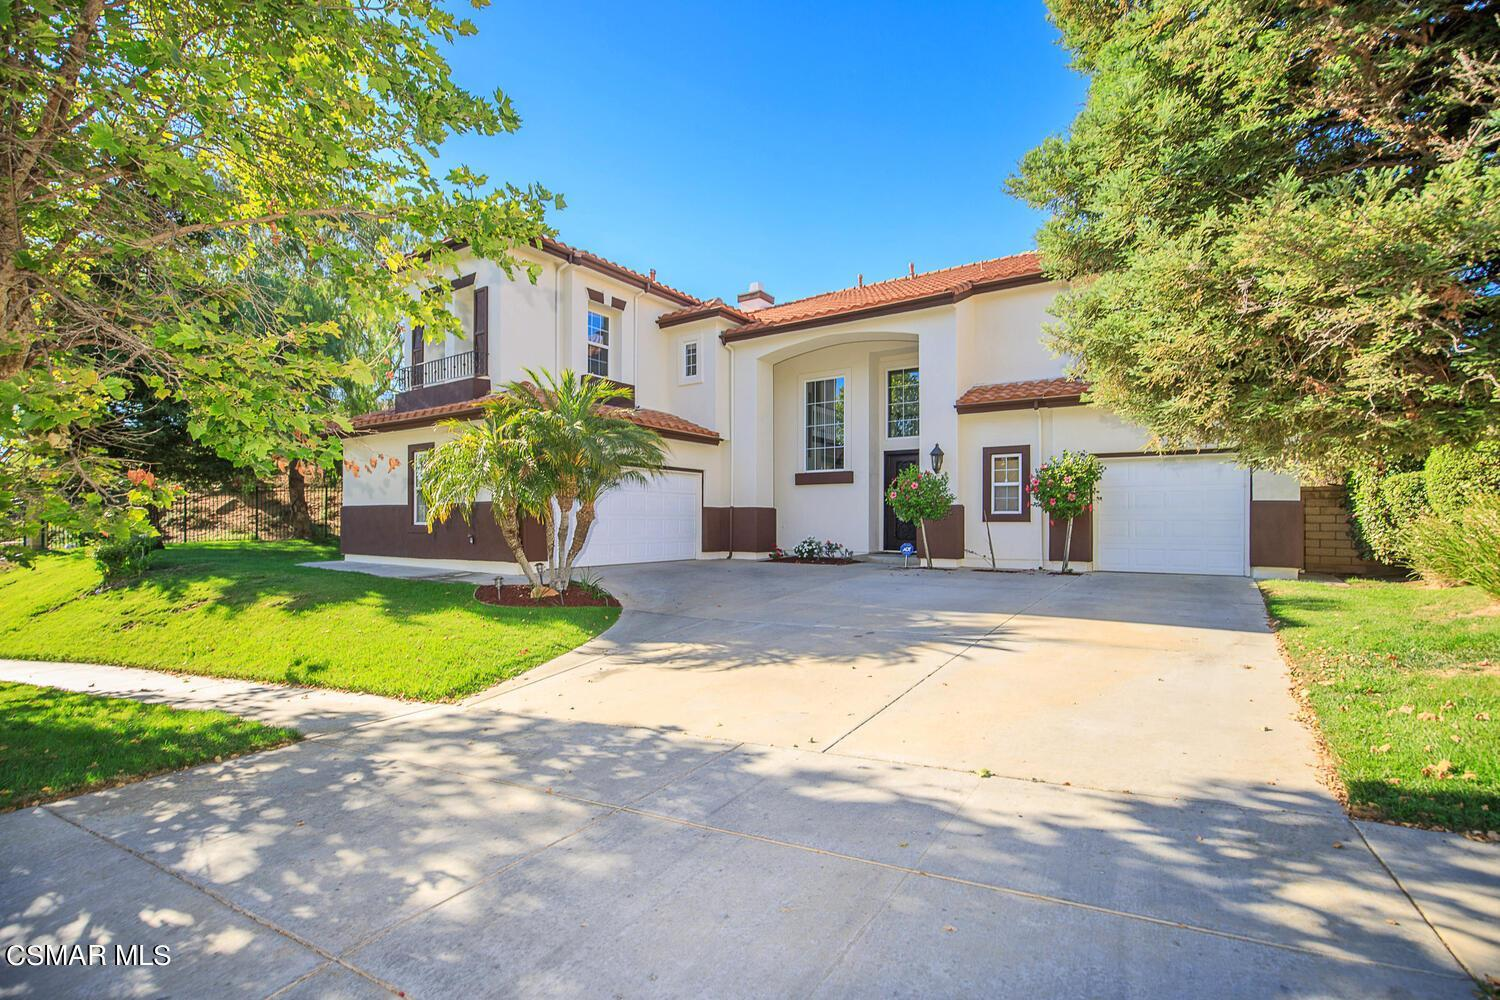 Property Image for 213 Sycamore Grove Street